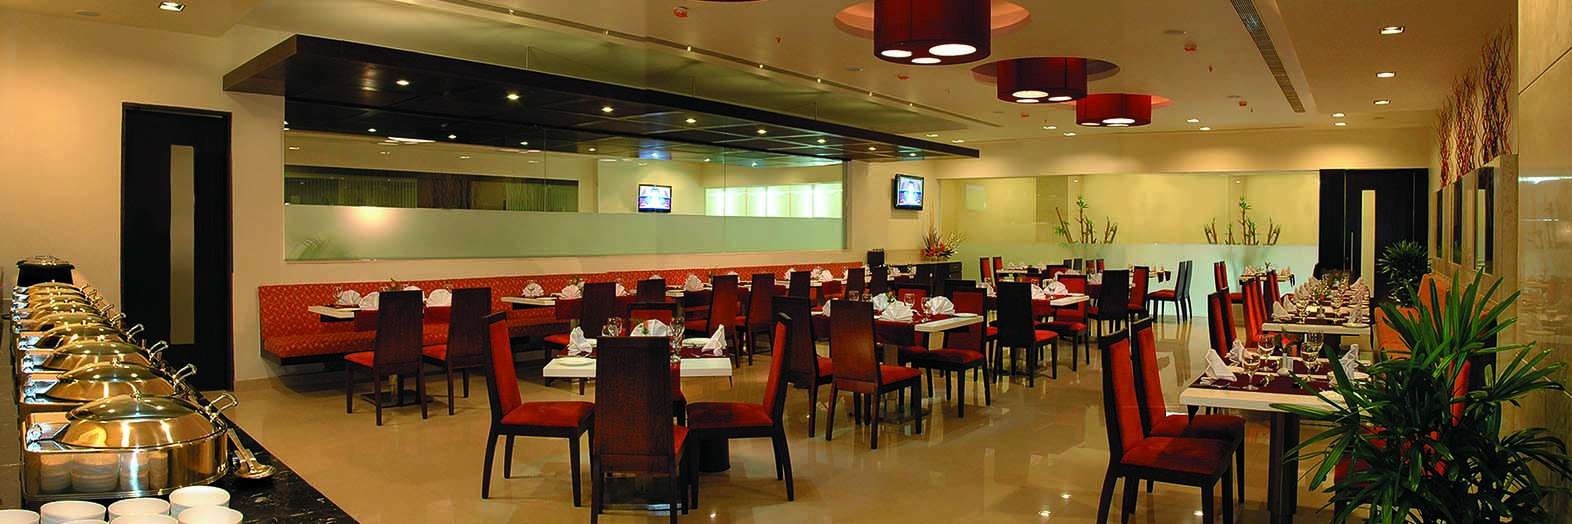 Restaurants in Visakhapatnam